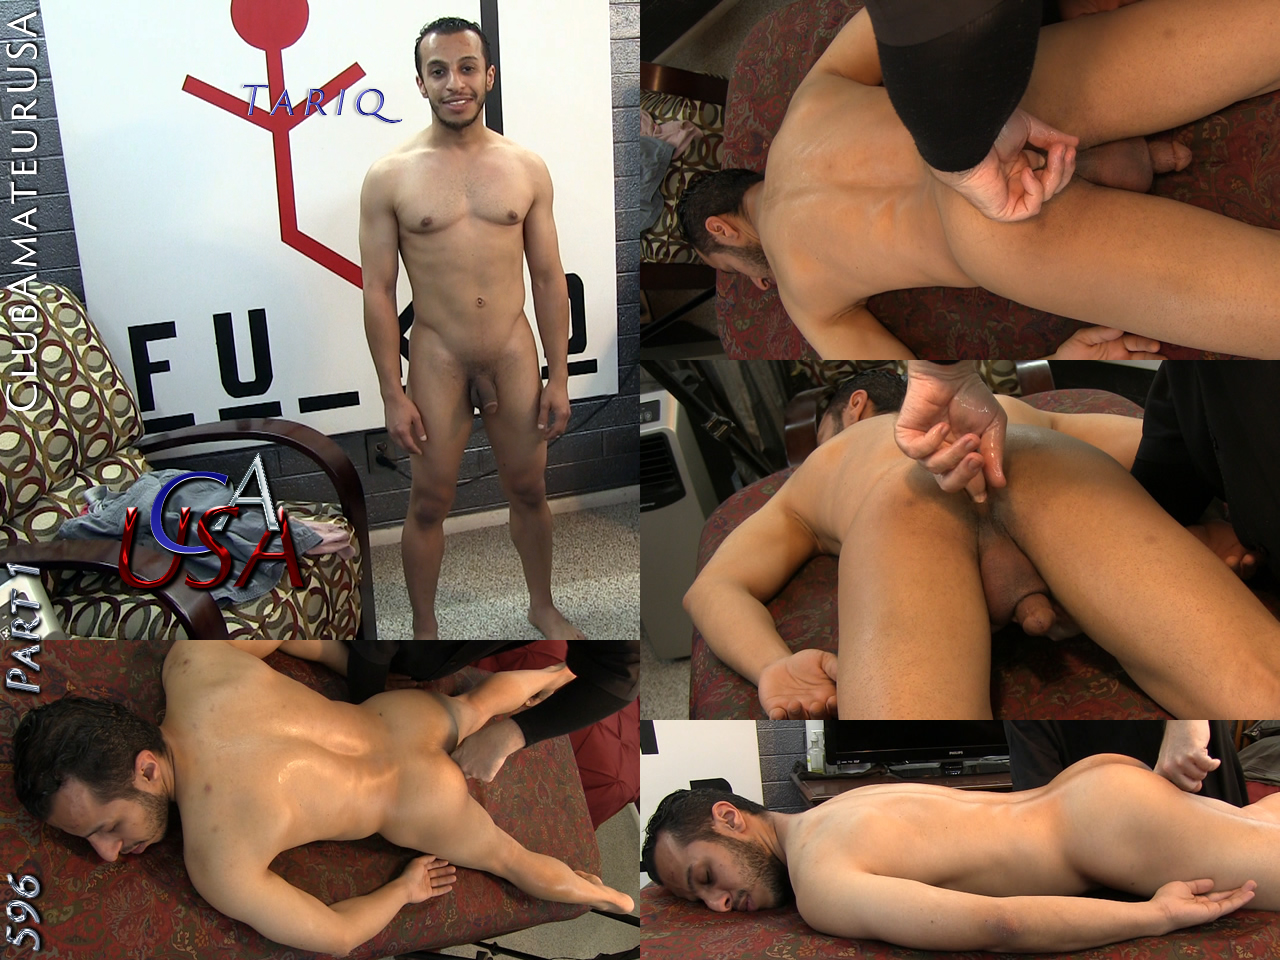 Download or Stream CAUSA 596 Tariq - Part 1 - Click Here Now